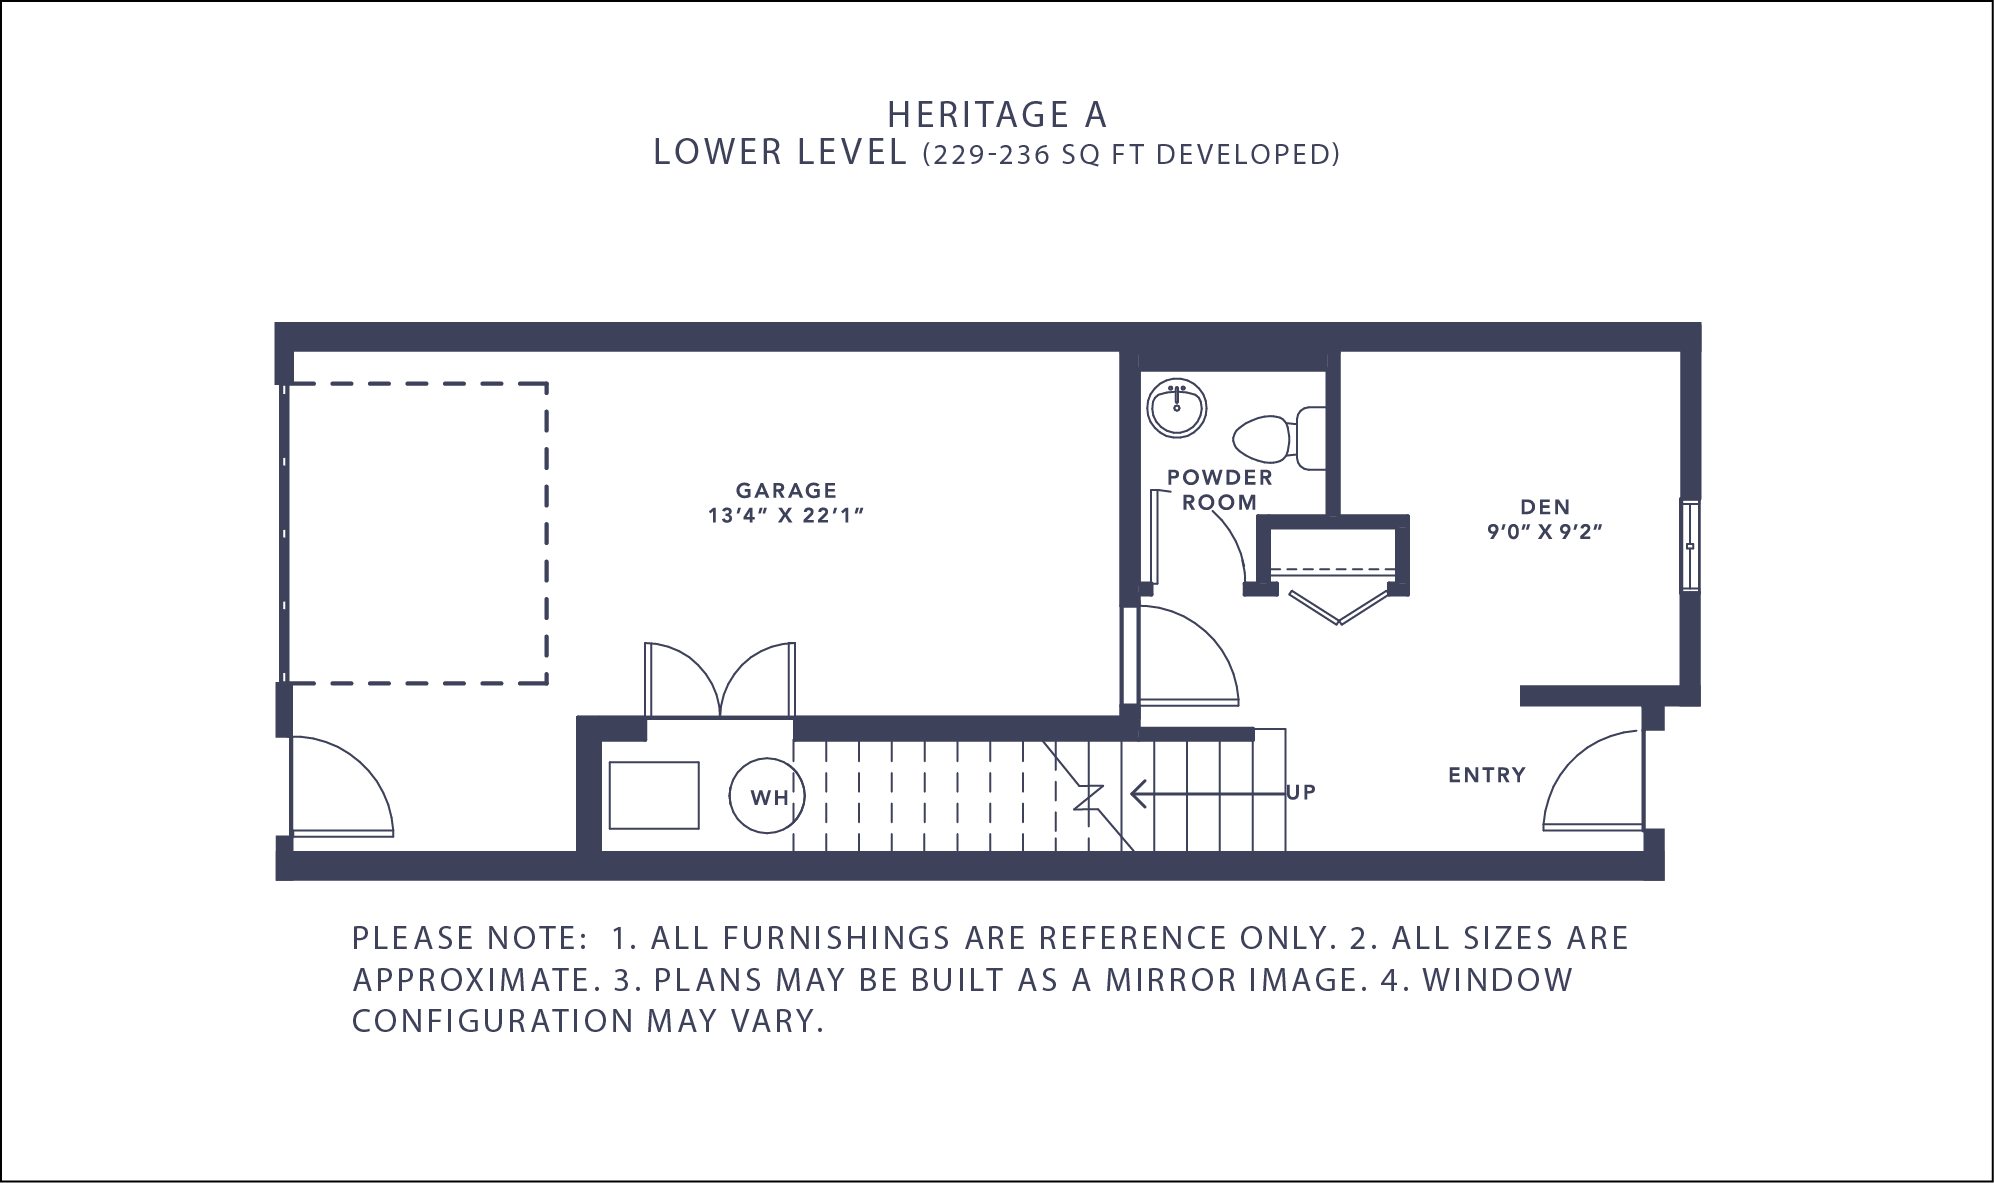 Heritage A Floorplan - Lower Level